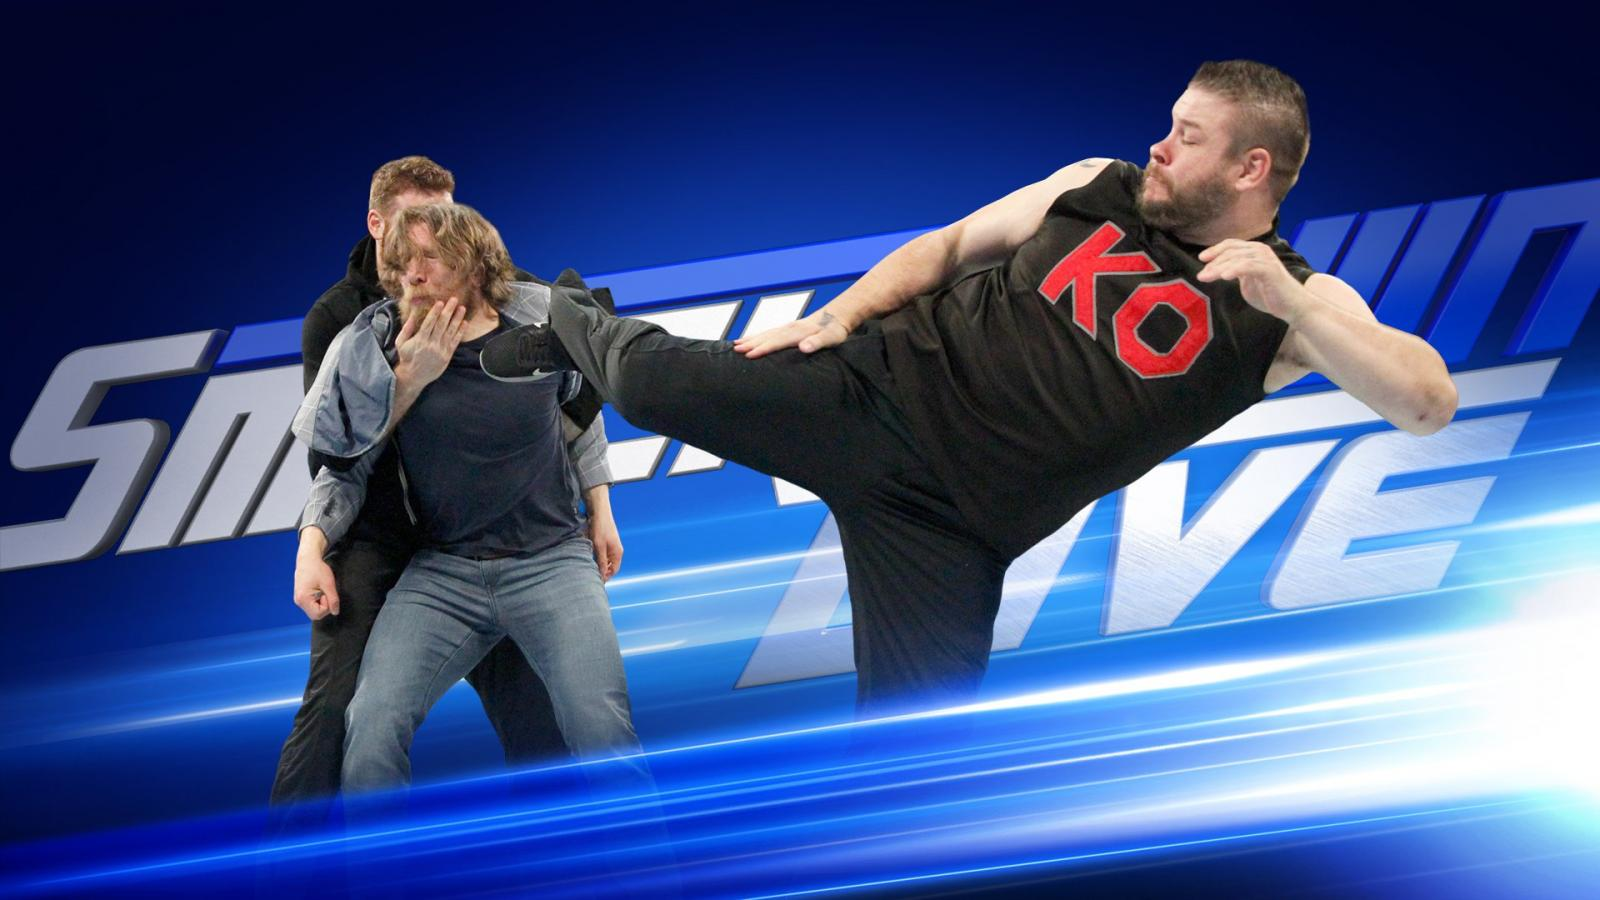 WWE SmackDown: Daniel Bryan to fight Owens and Zayn in WrestleMania 34